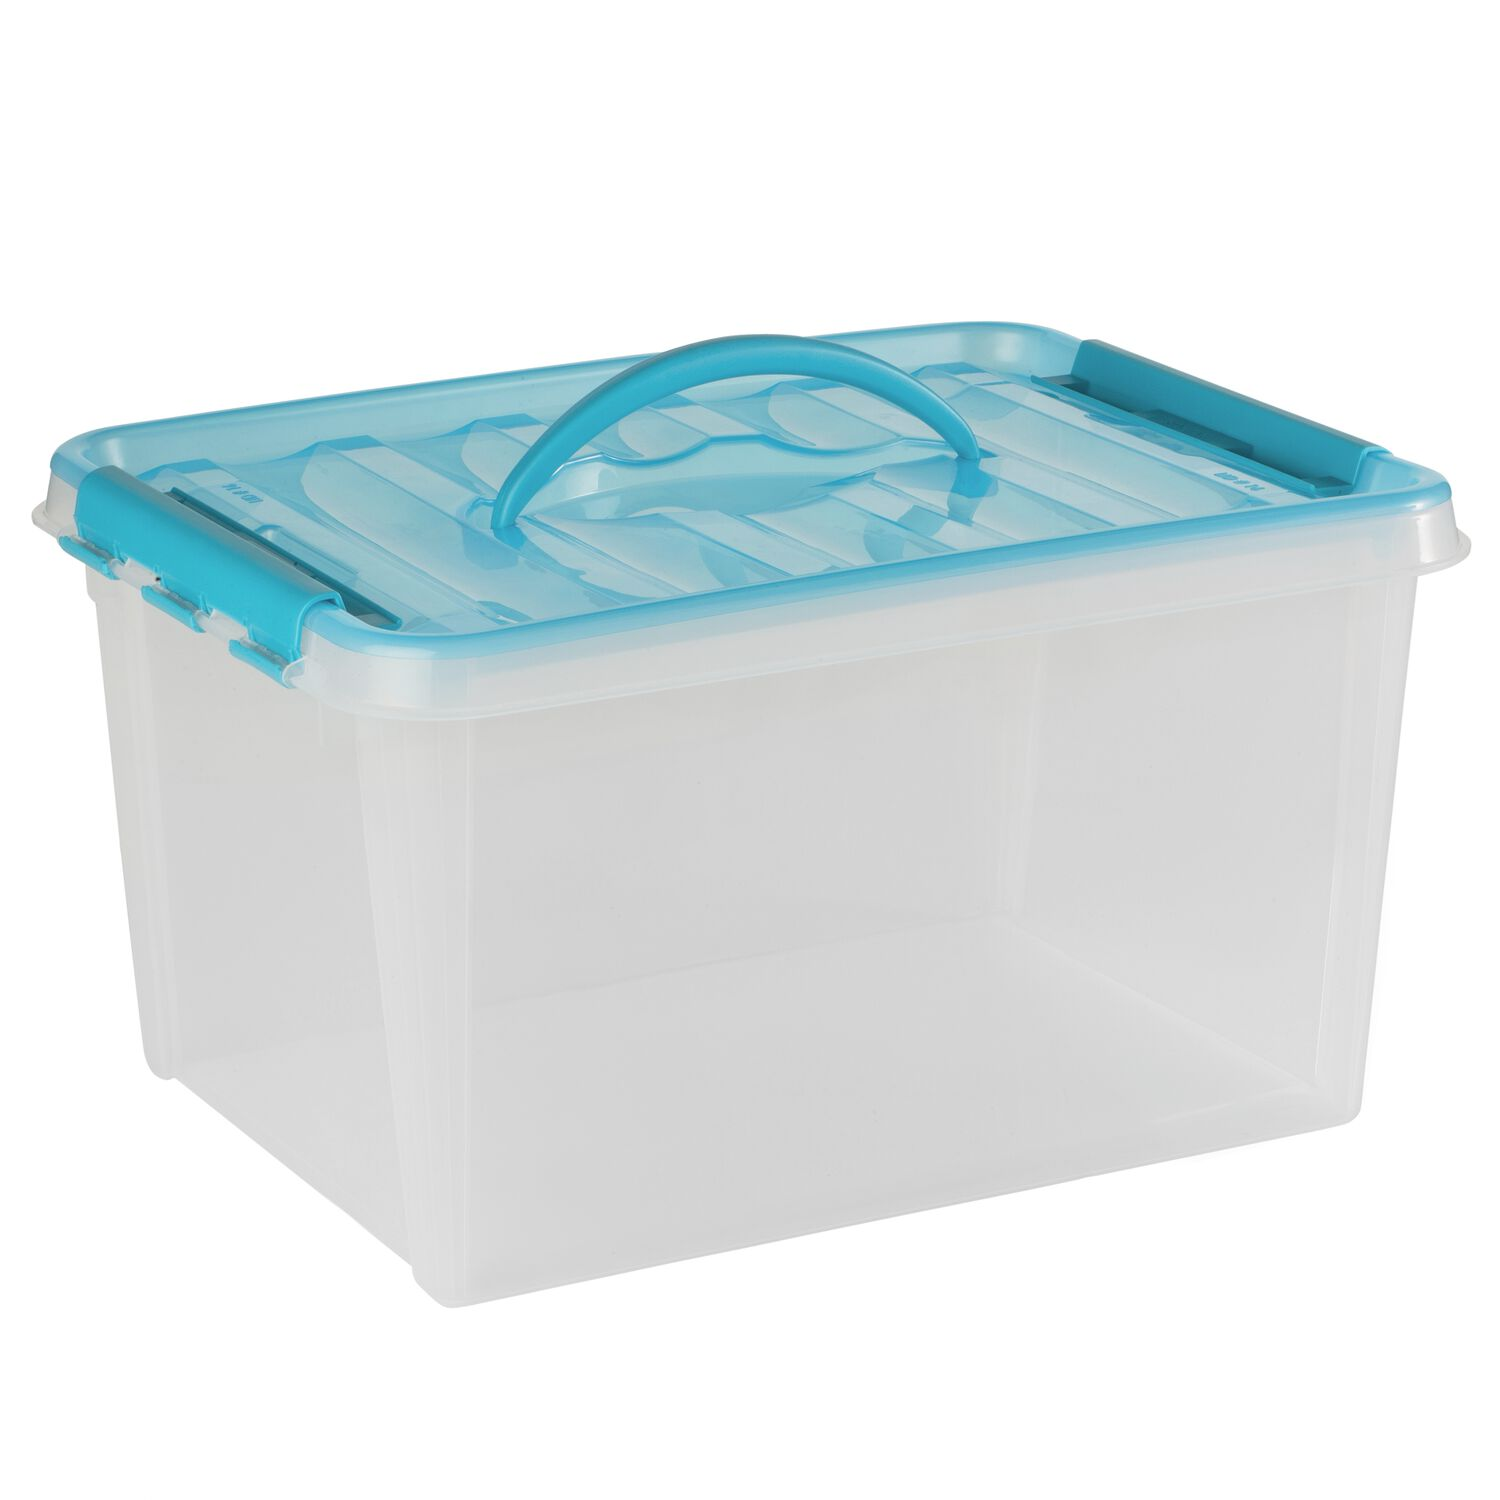 Snapware smart store 16 x 9 home storage container for Smart house container